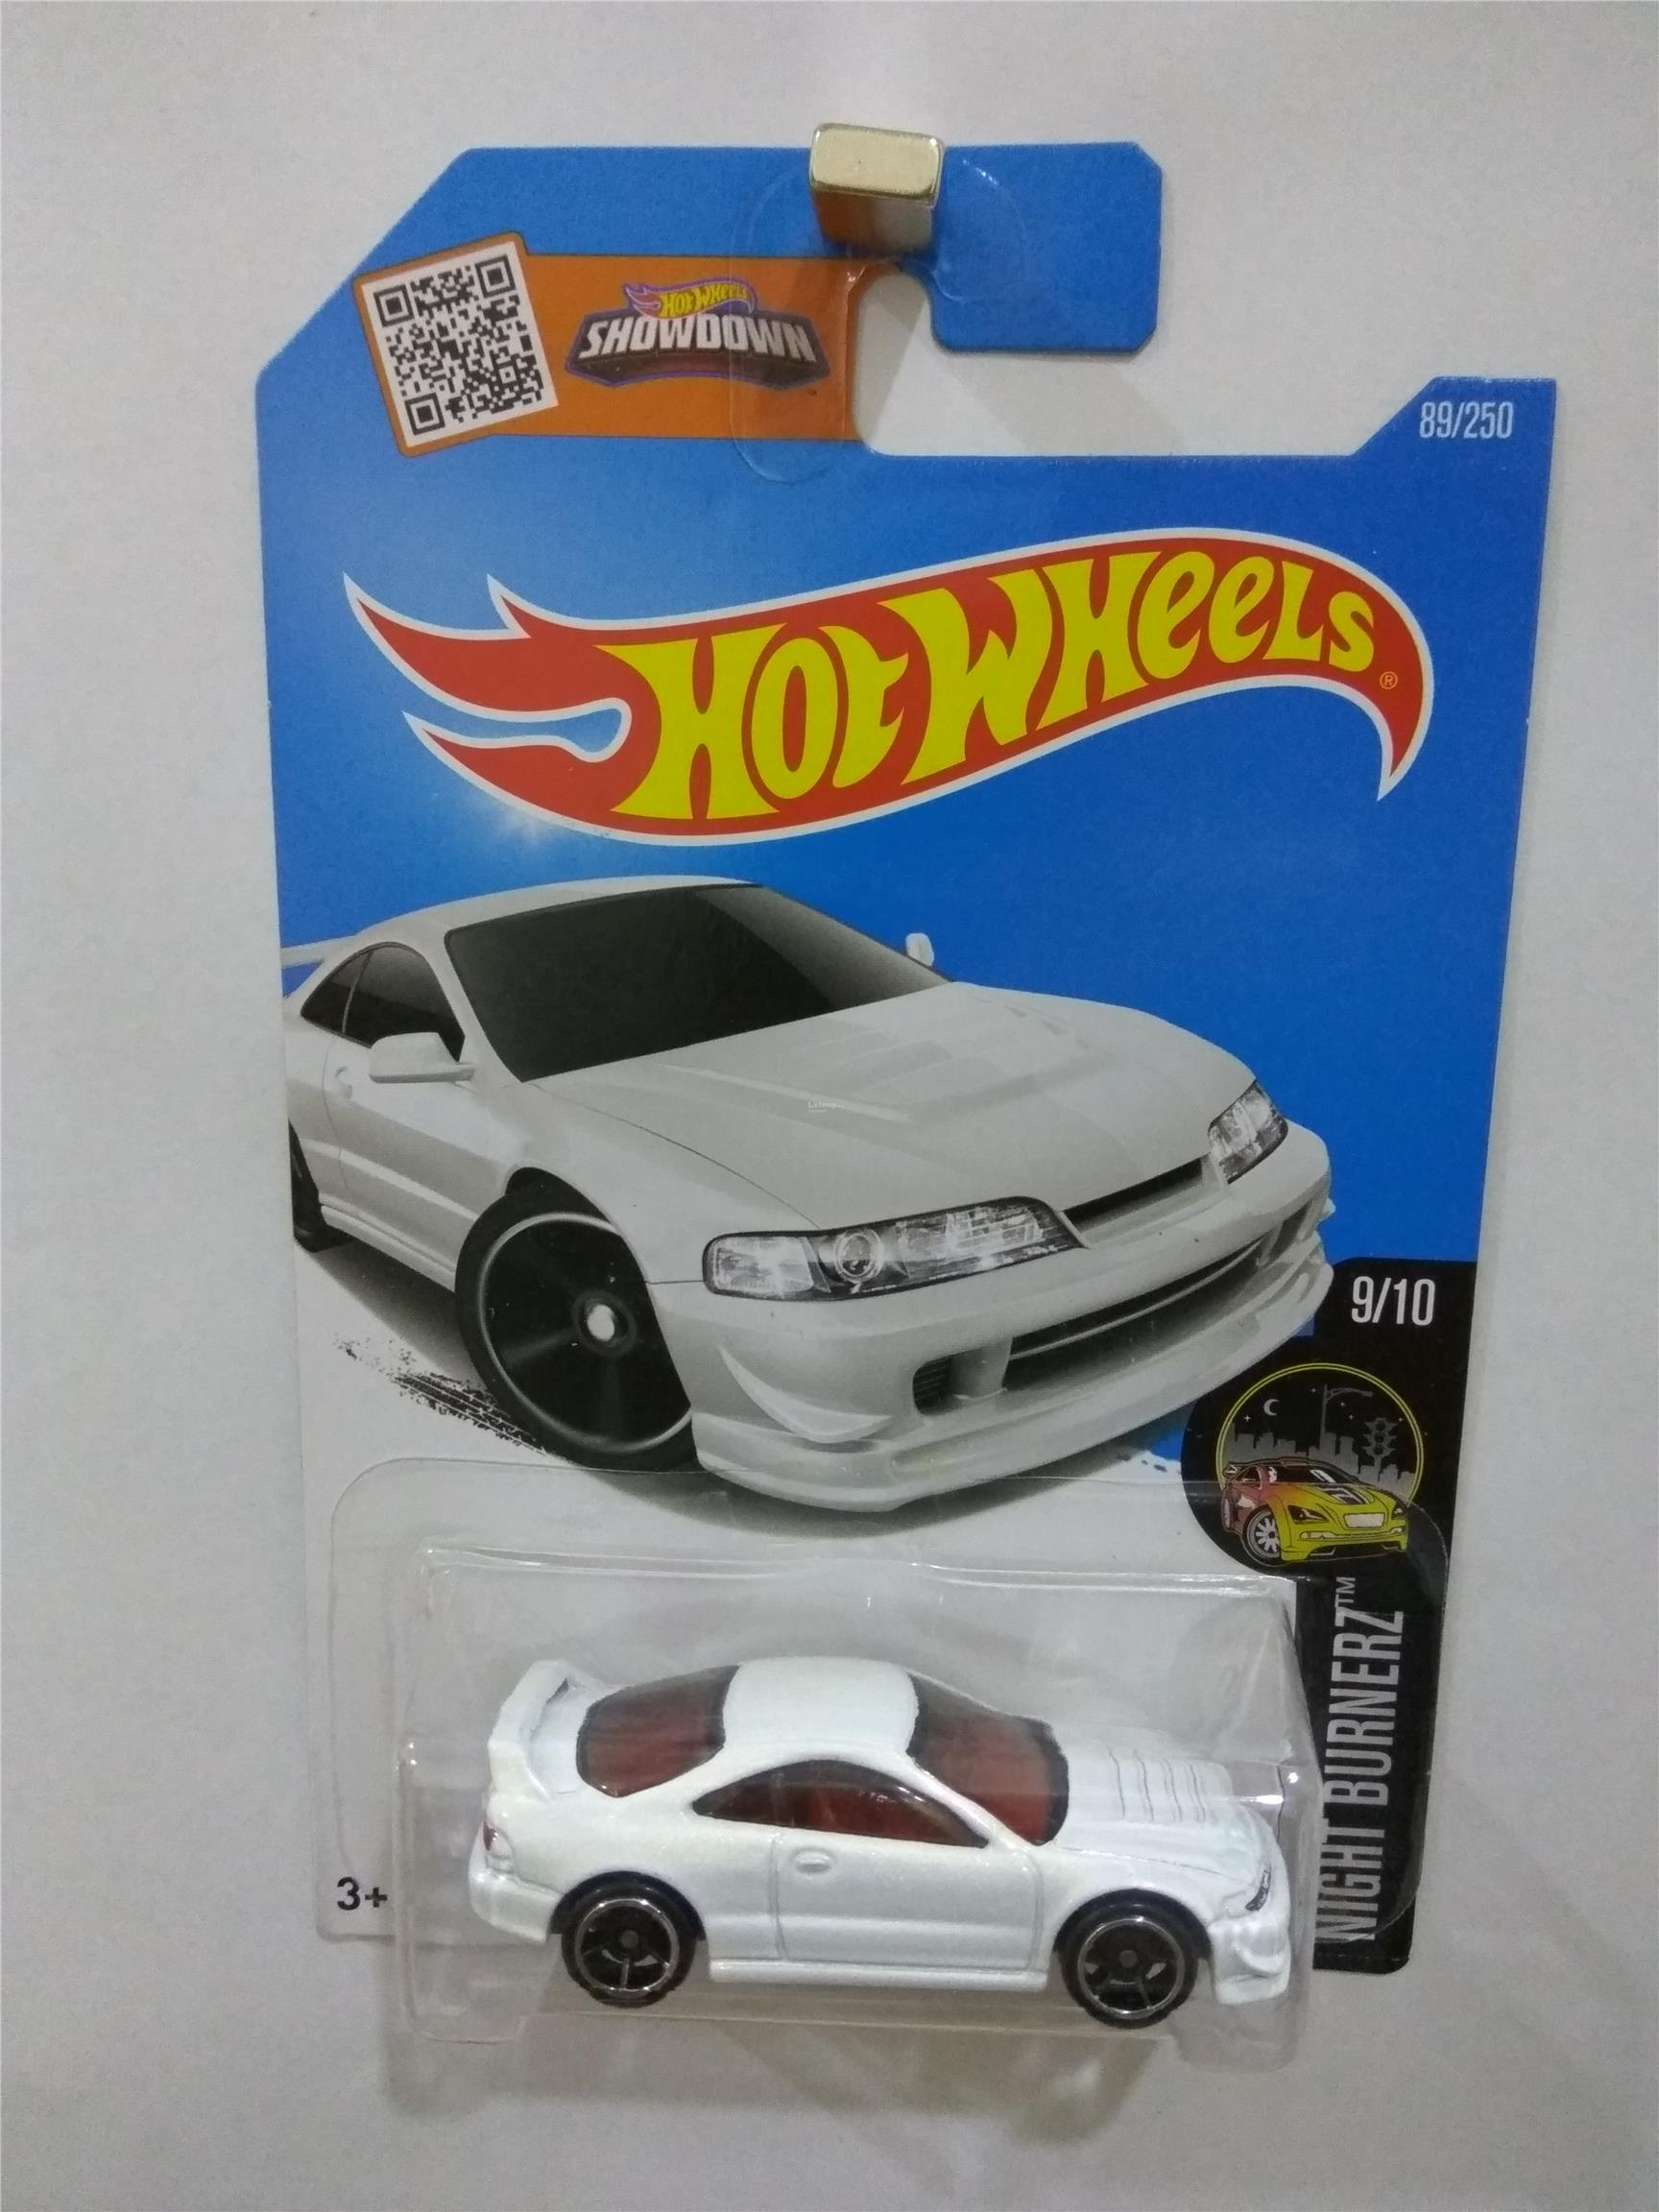 Diecast Vehicles Hot Wheels Custom 01 Acura Integra Gsr 1 64 Scale Model Toy Car New Opened Yogarmony Gr